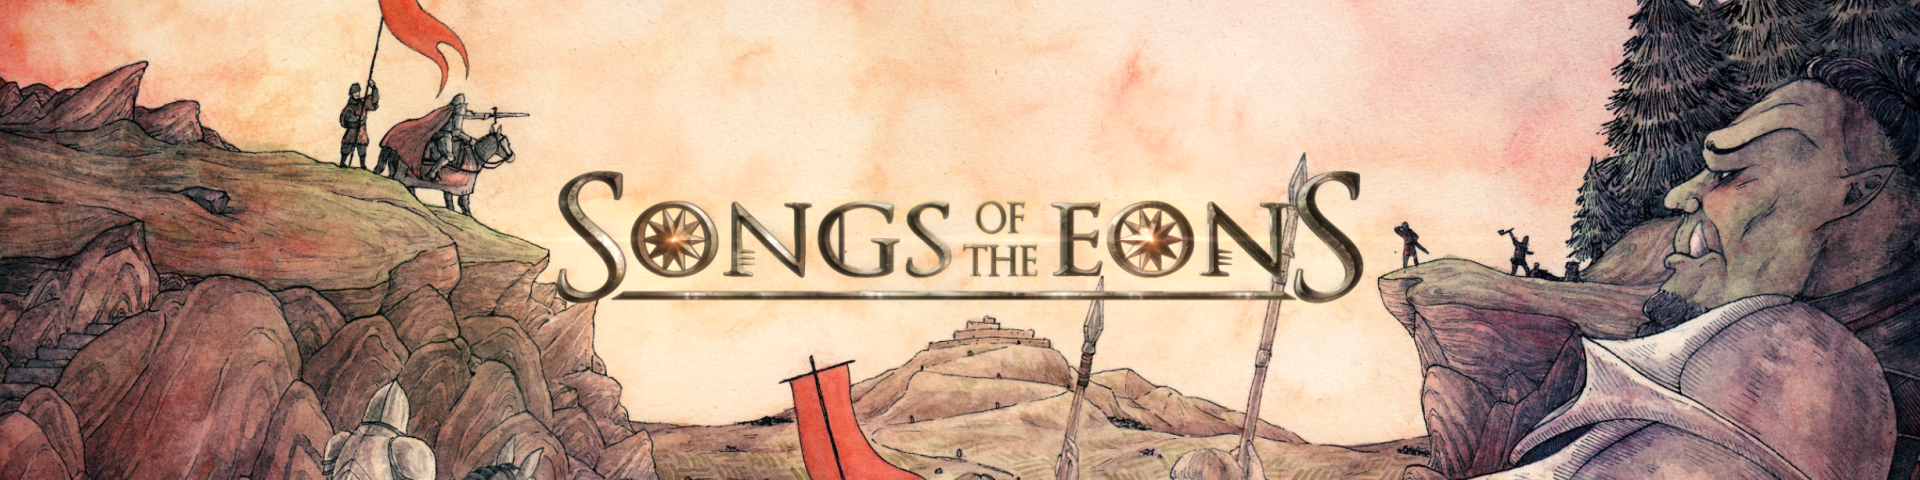 Songs of the Eons, 0.1.5